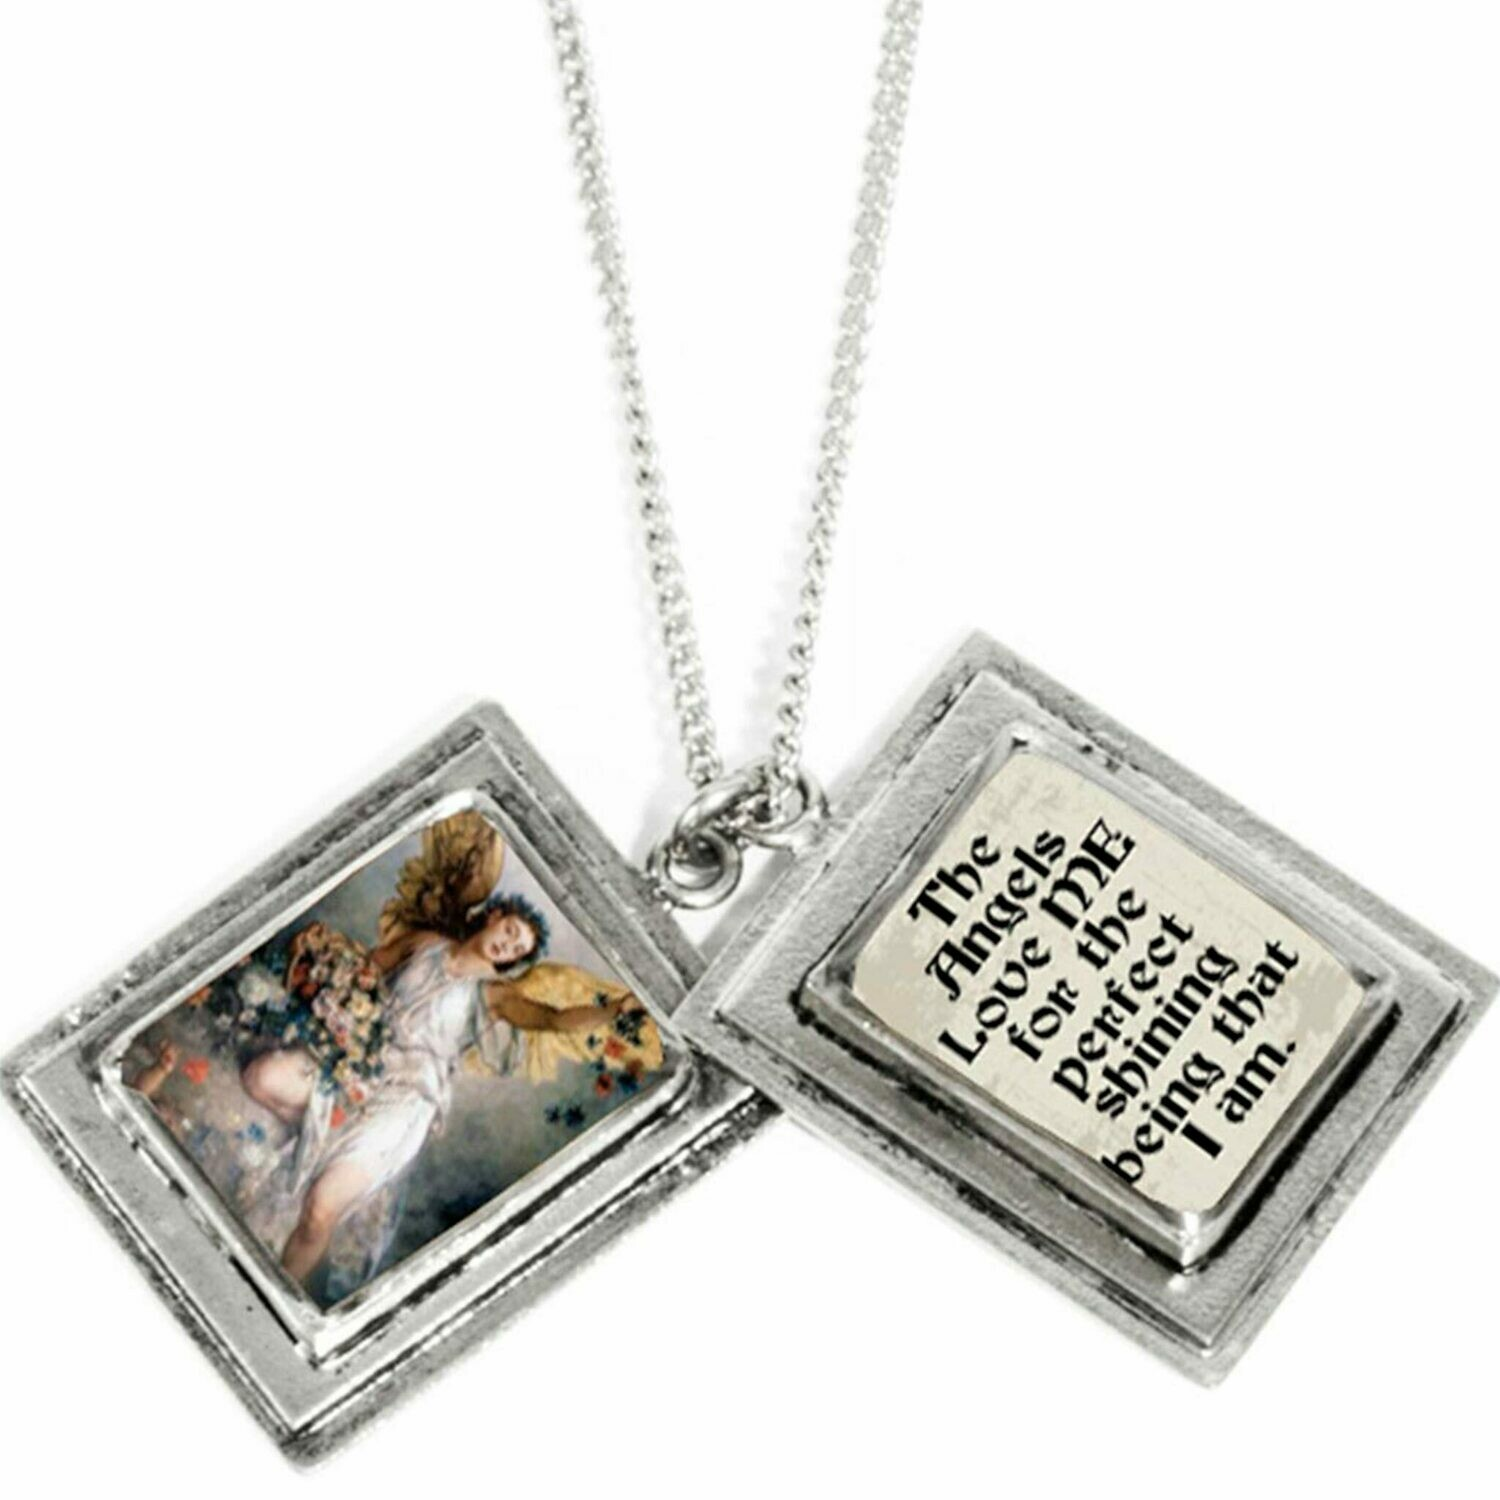 True Prayer Angels Love charm necklace